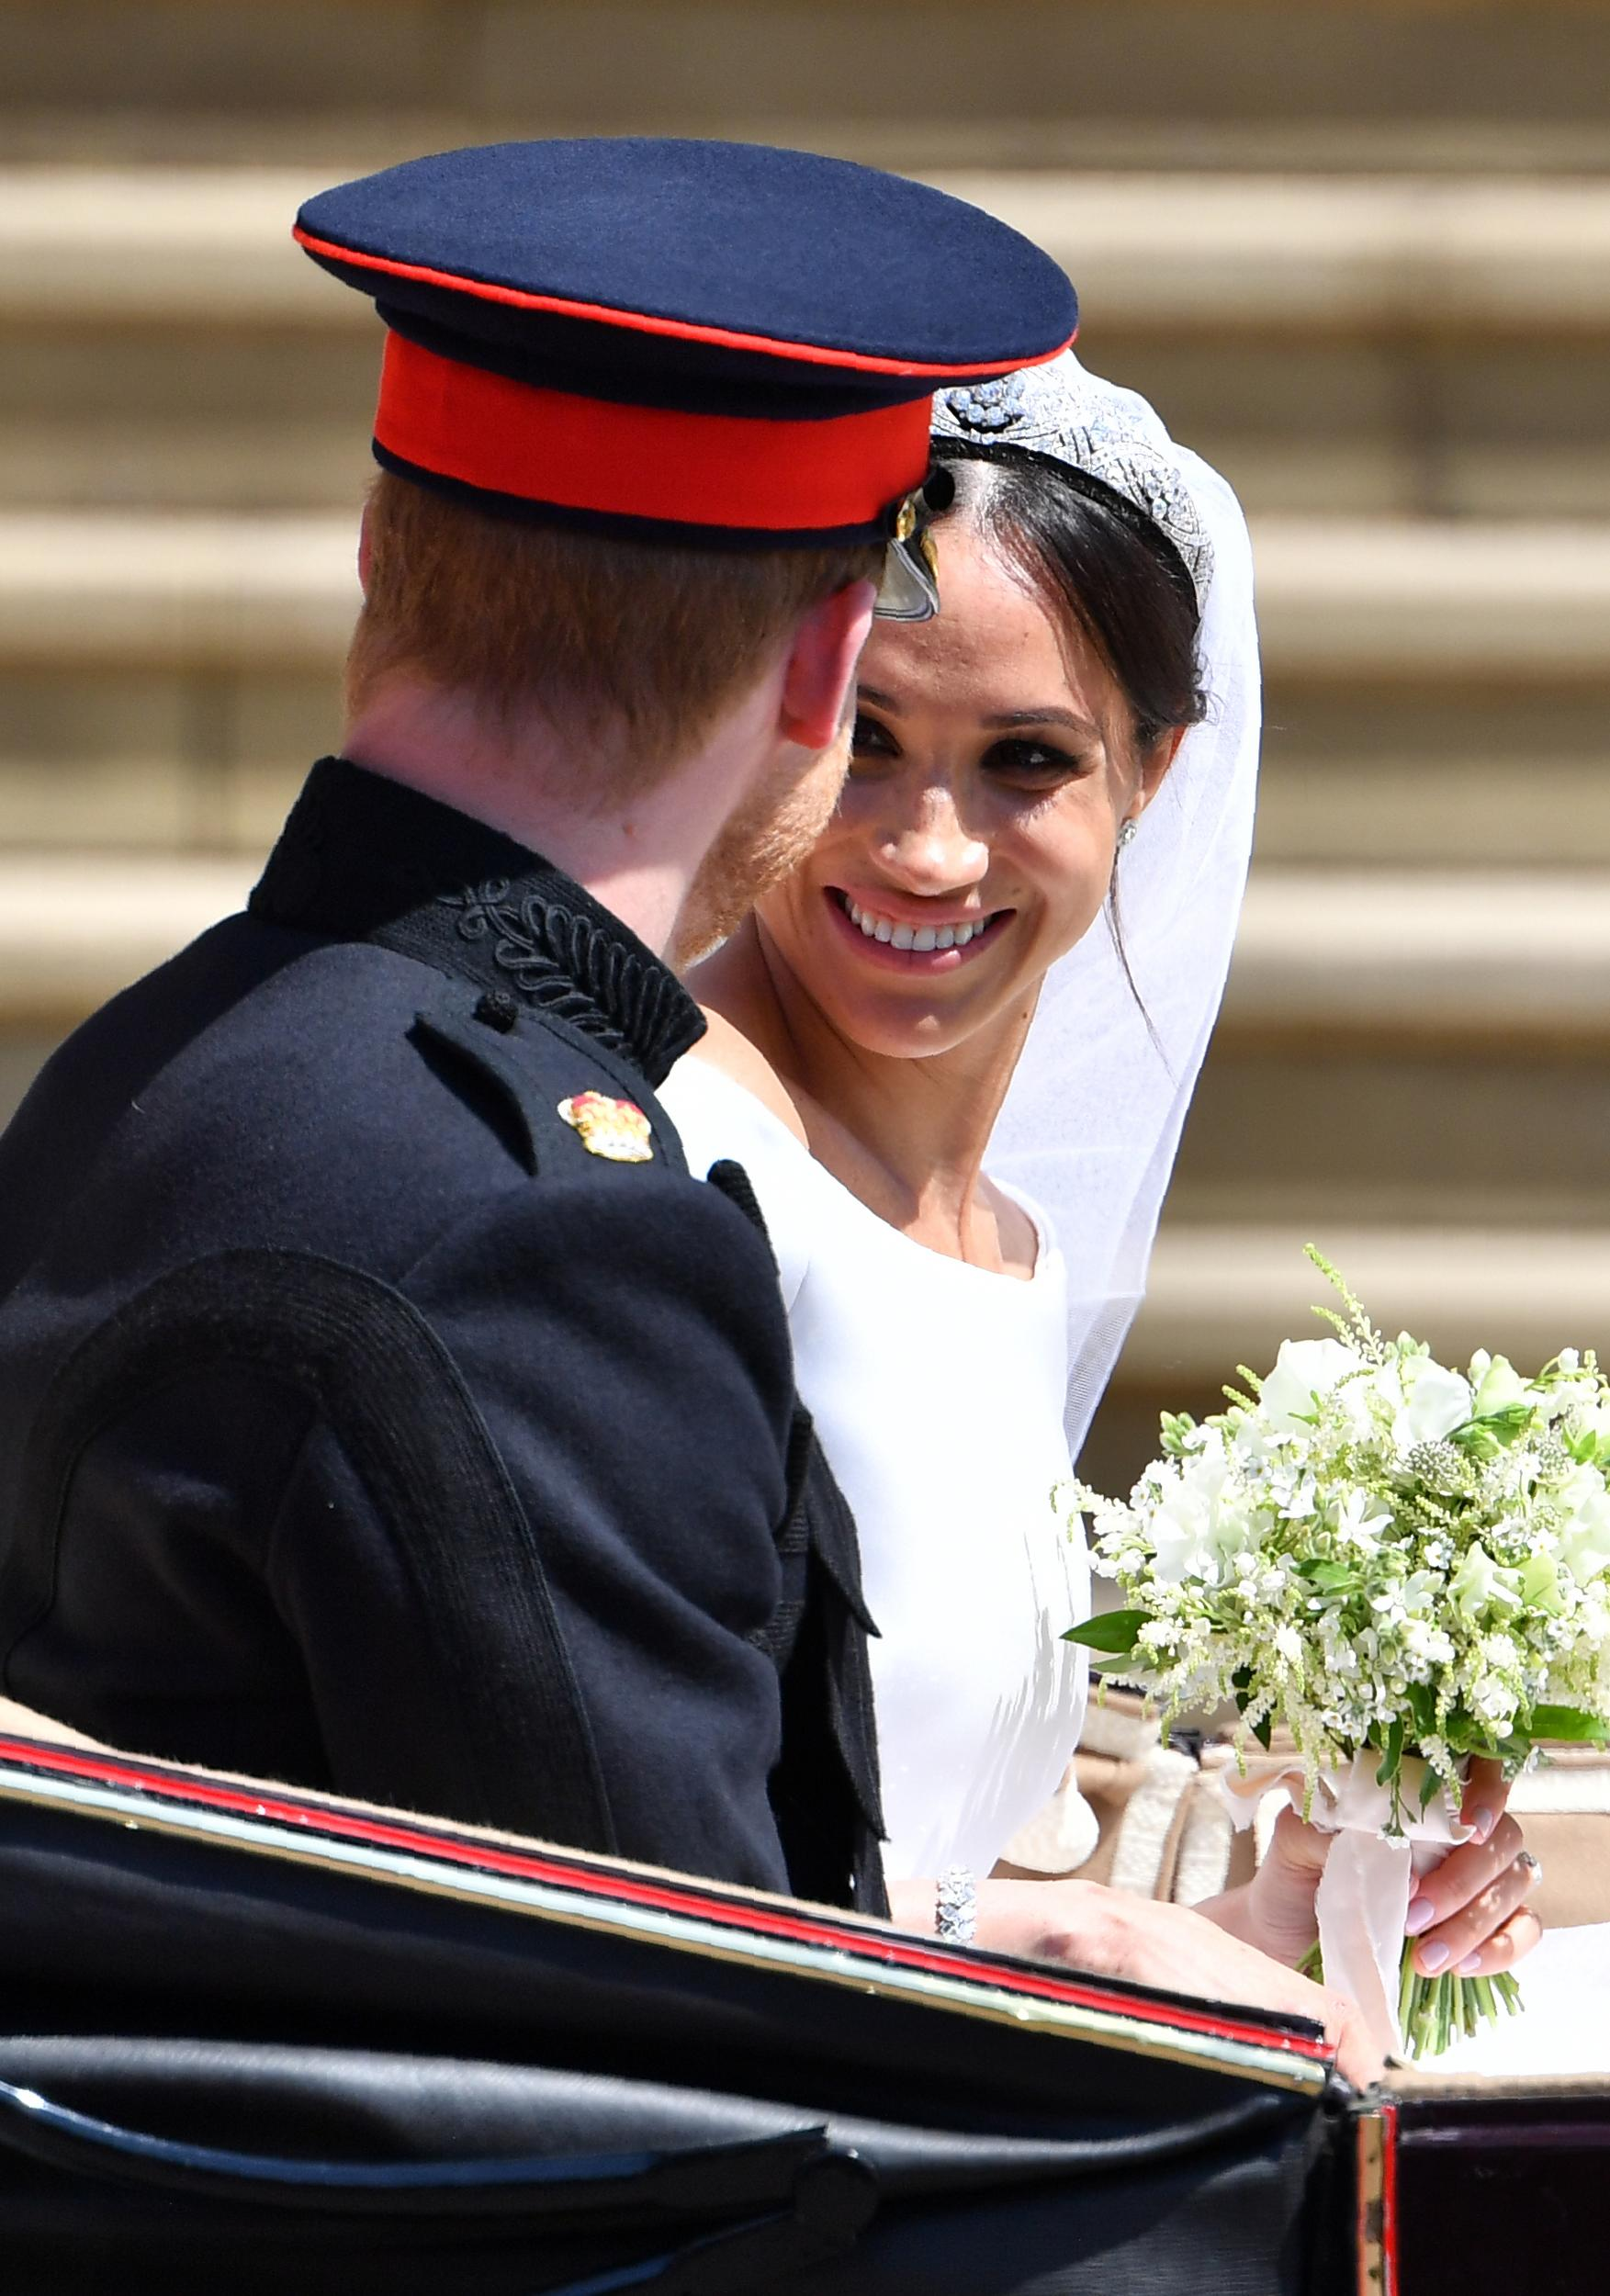 Prince Harry and Meghan Markle get into the Ascot Landau Carriage as they leave St. George's Chapel in Windsor Castle after their wedding ceremony.